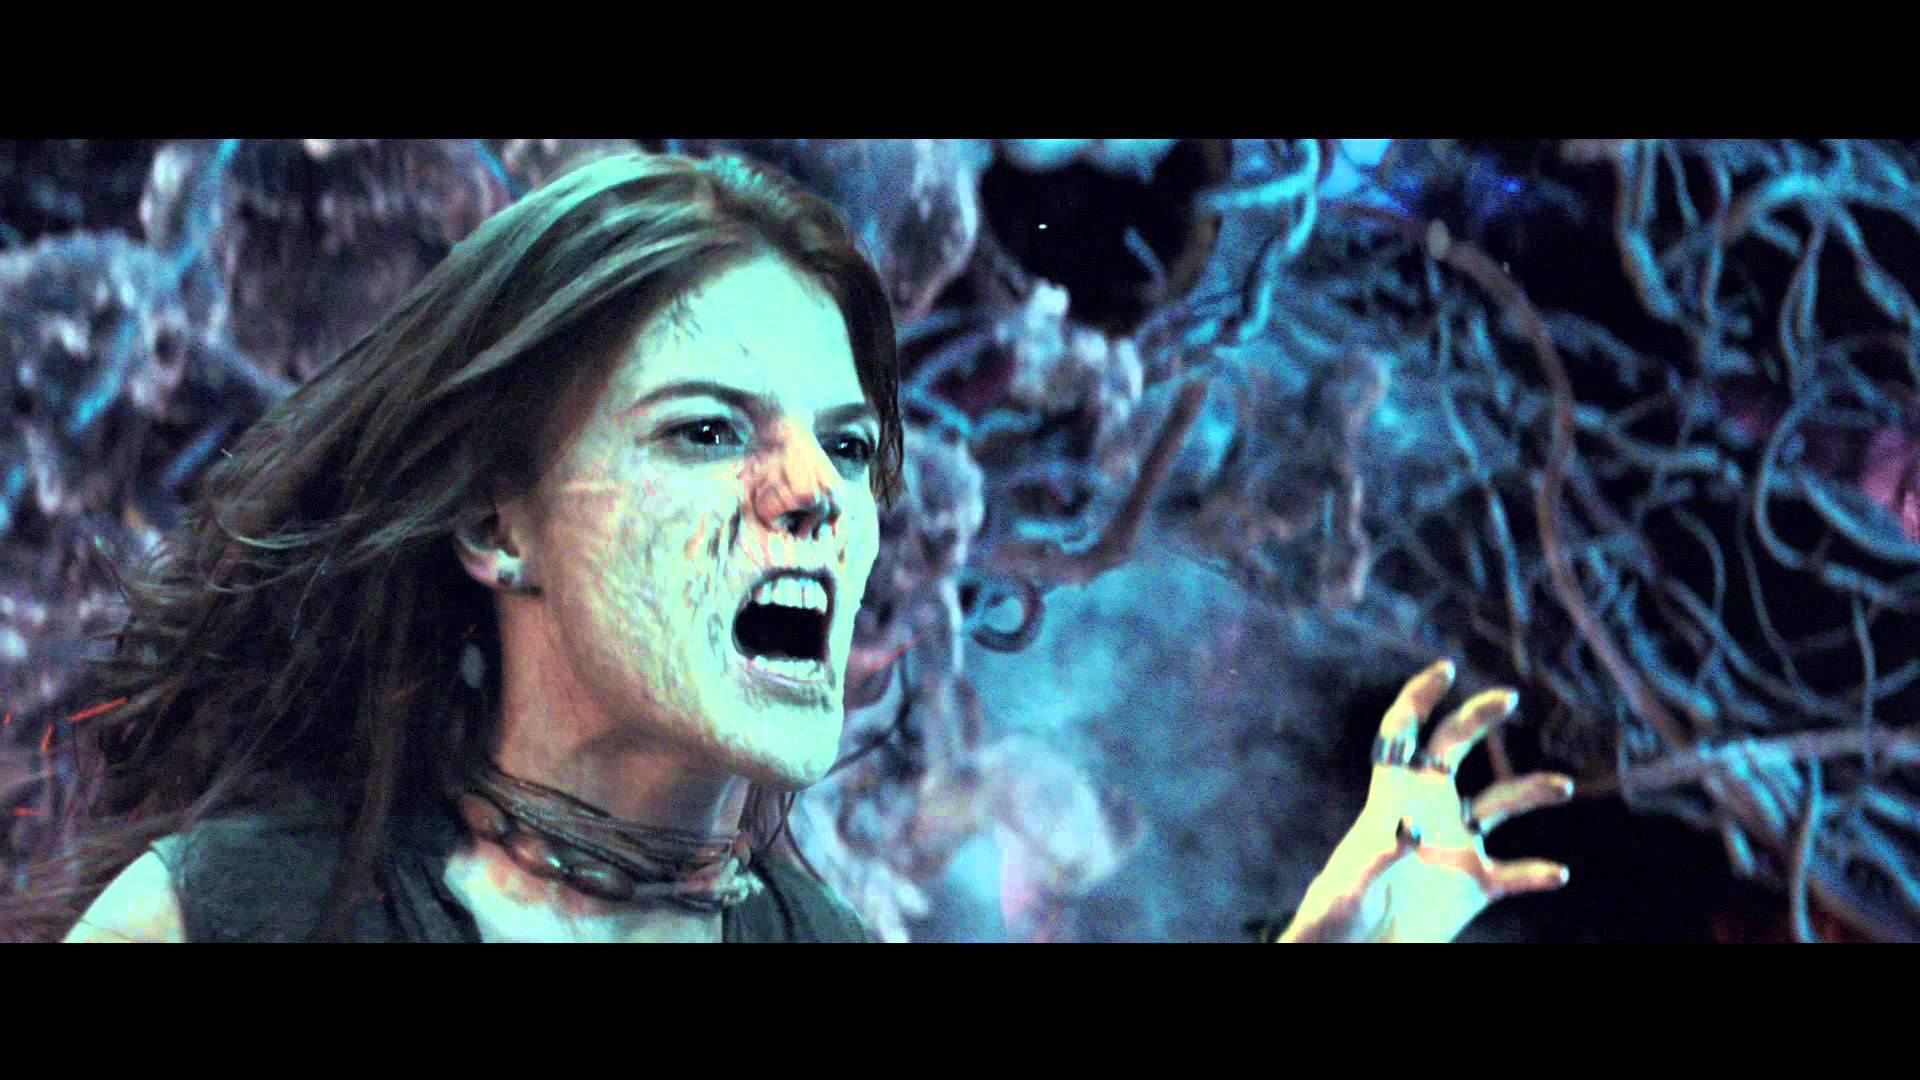 THE LAST WITCH HUNTER – BEYOND EVIL [HD]